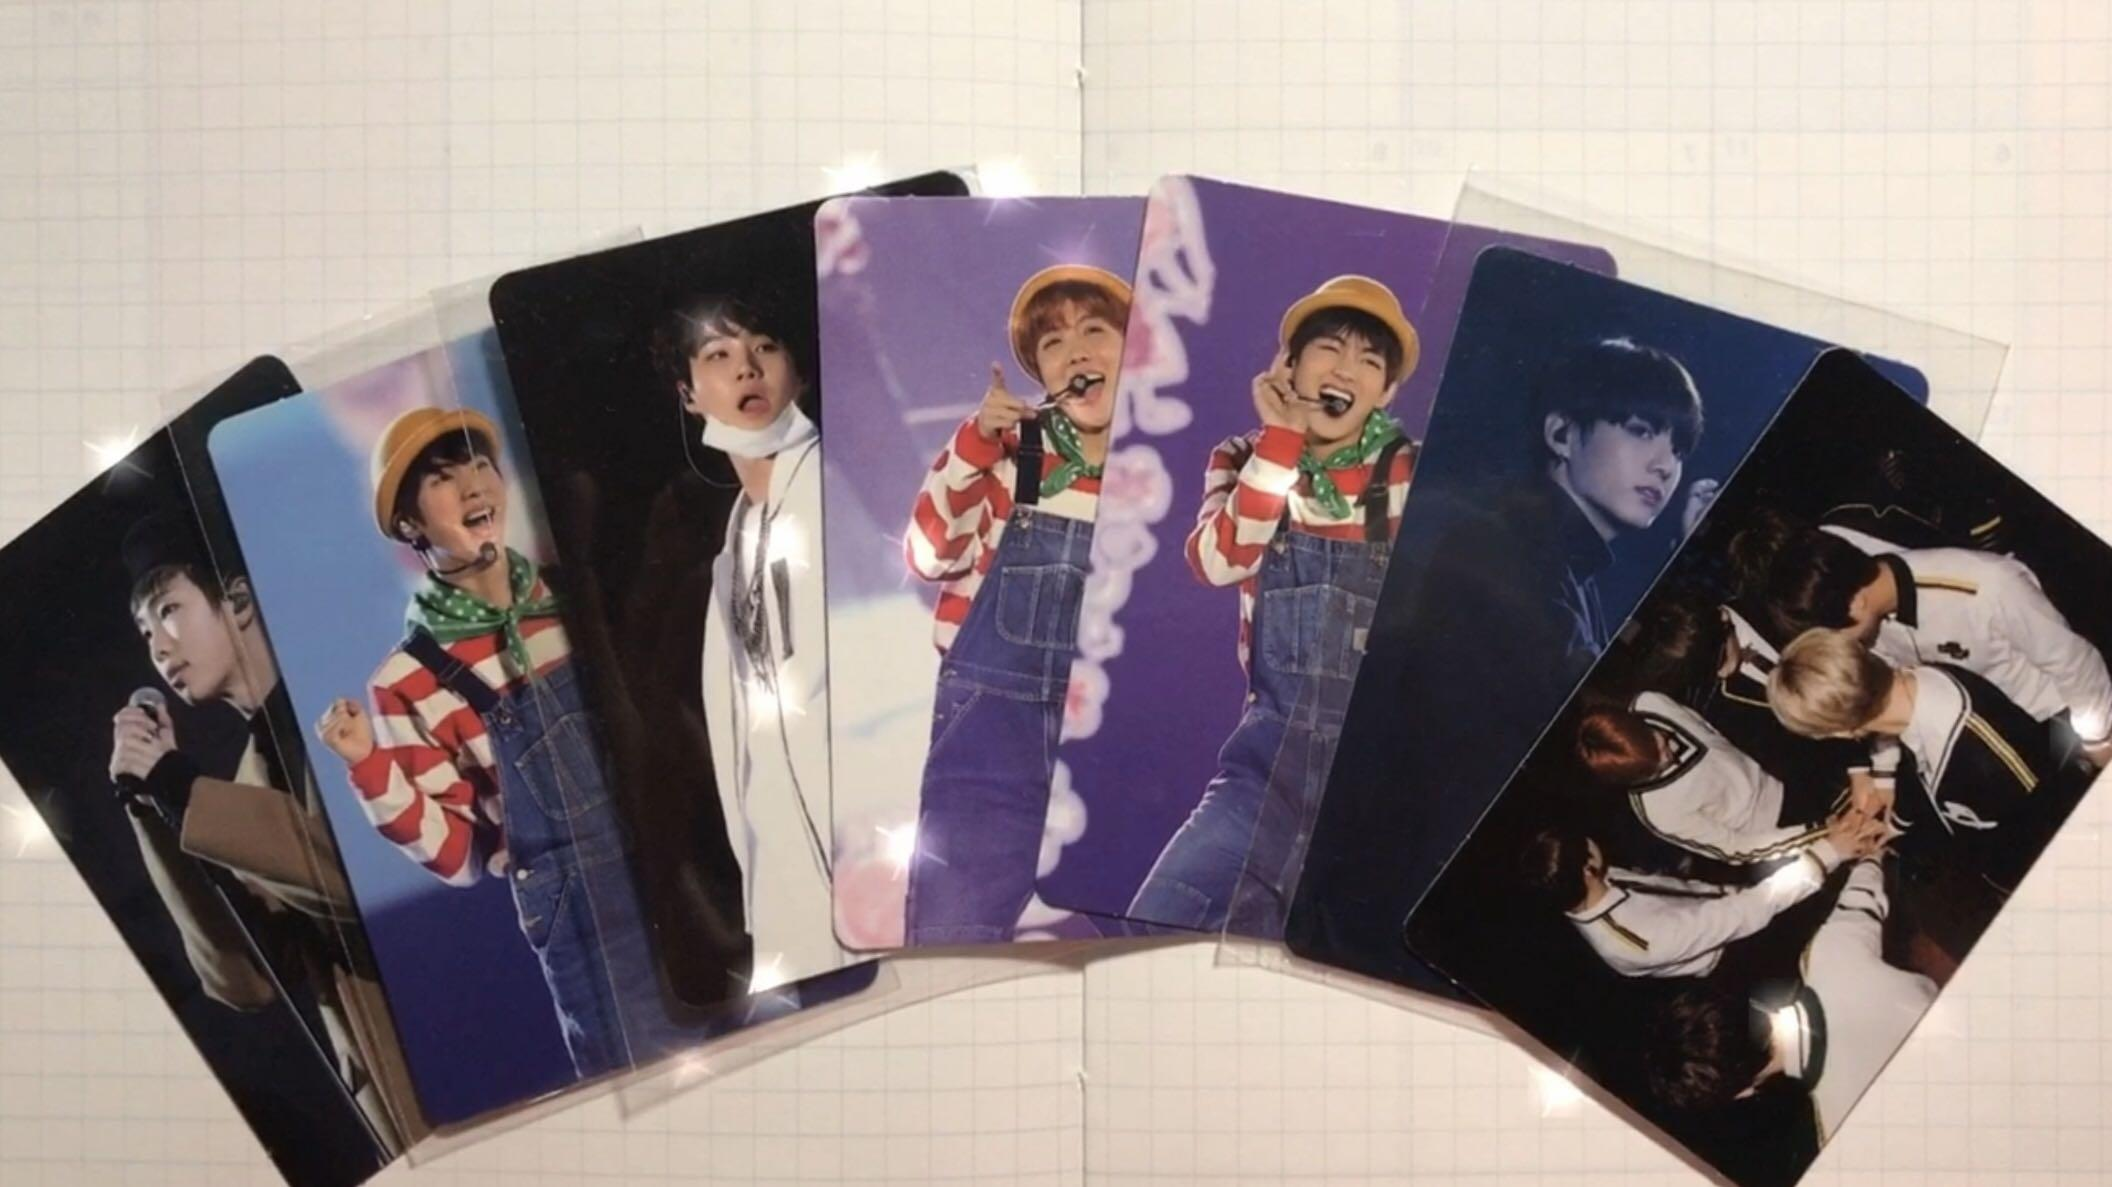 Bts 3rd Muster Dvd Photocard Photo Cards